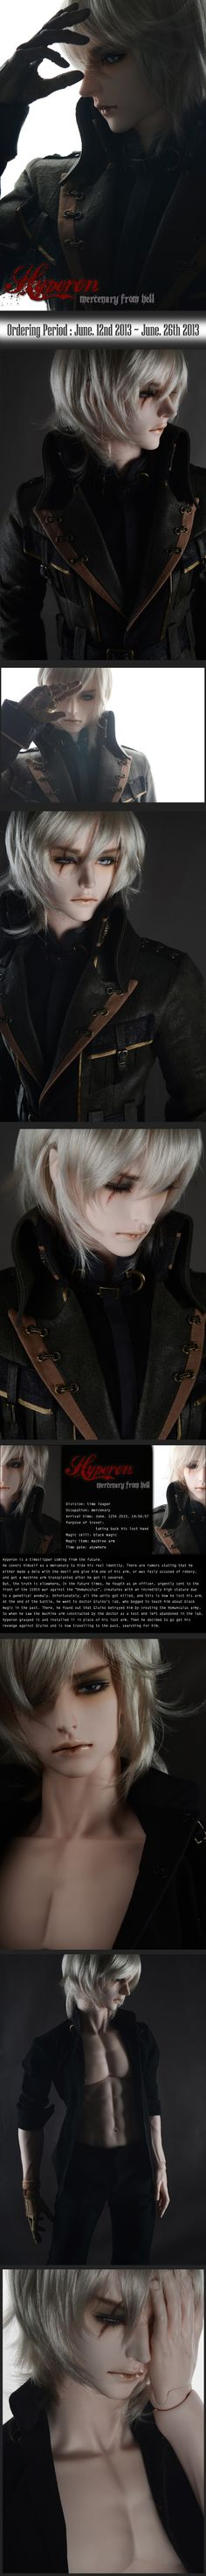 soom Hyperon-Mercenary from Hell [Hyperon] - $316.00 : BJD baby,bjd dolls,bjd doll shop,bjd bragan?a,fairyland,volks bjd,soom,luts bjd,Super Dollfie, BJD lovers collect community